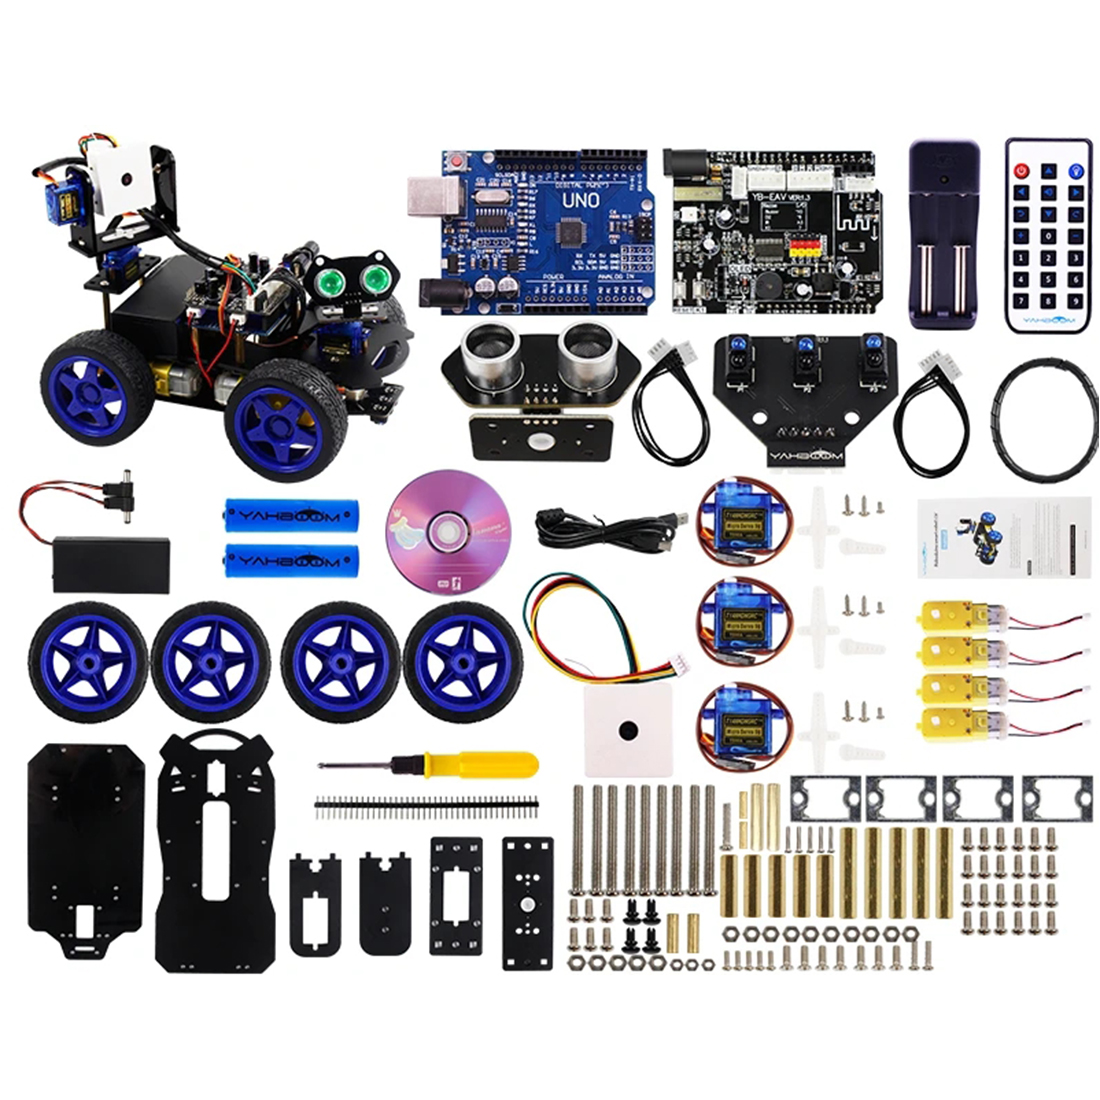 FOR Scratch3.0 Luminescent Ultrasonic Module Smart Robot Car Wifi Camera Gimbal Kit For Arduino UNO(with Two 18650 Batteries)